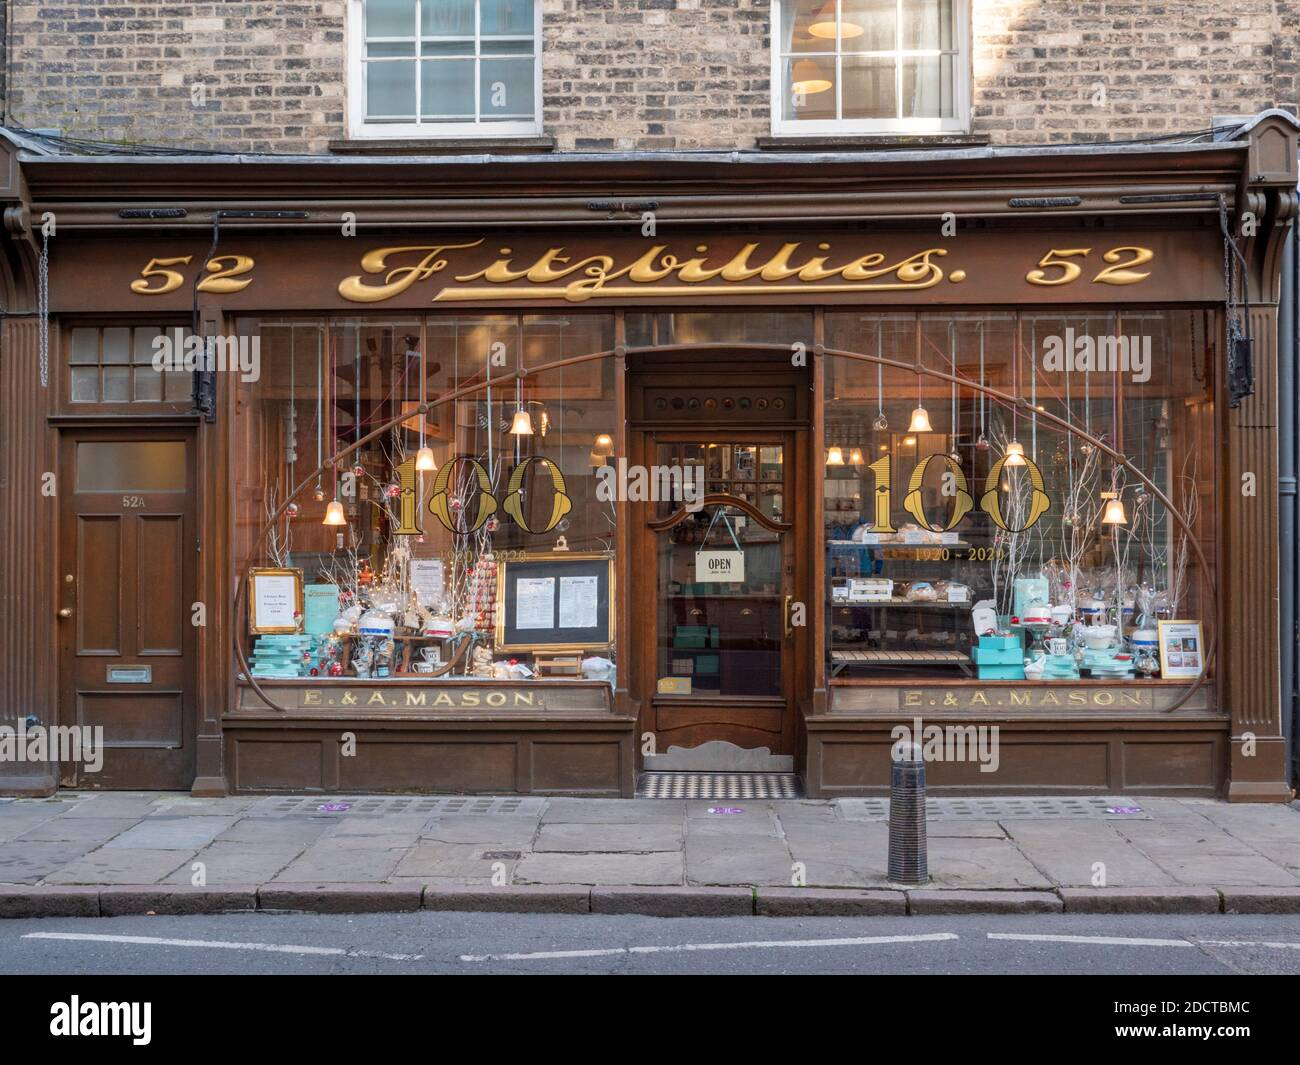 The Fitzbillies cafe shop and restaurant in Cambridge UK Stock Photo